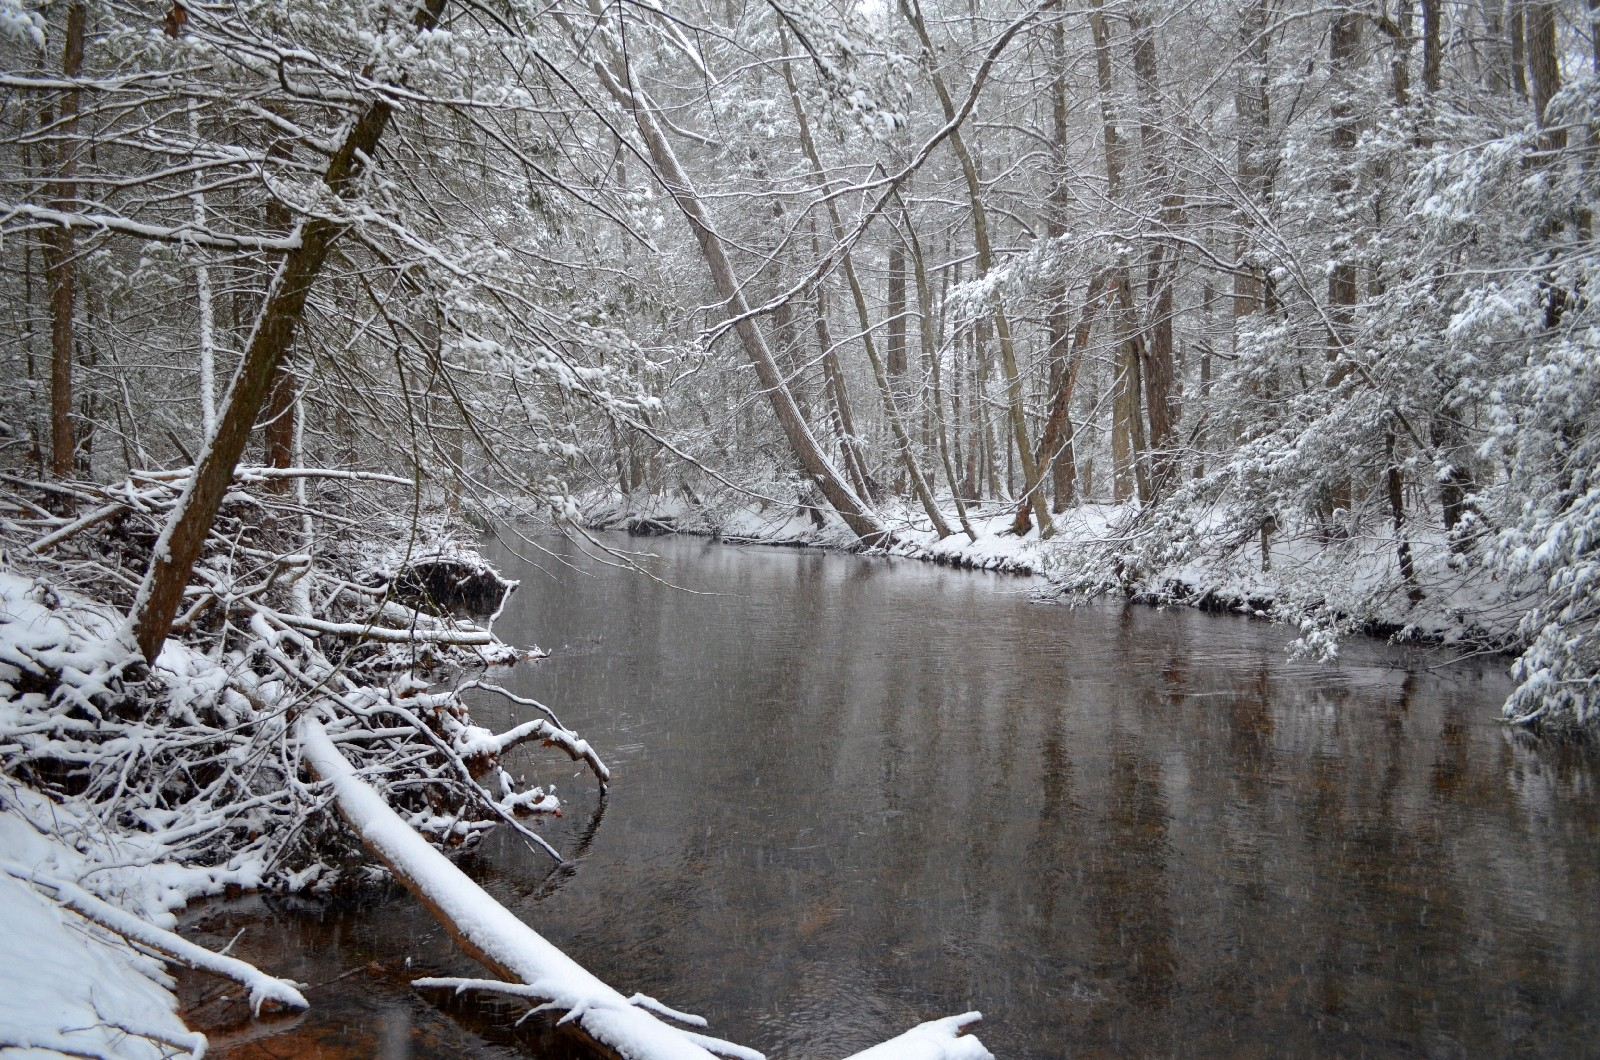 Clarks Creek in the snow